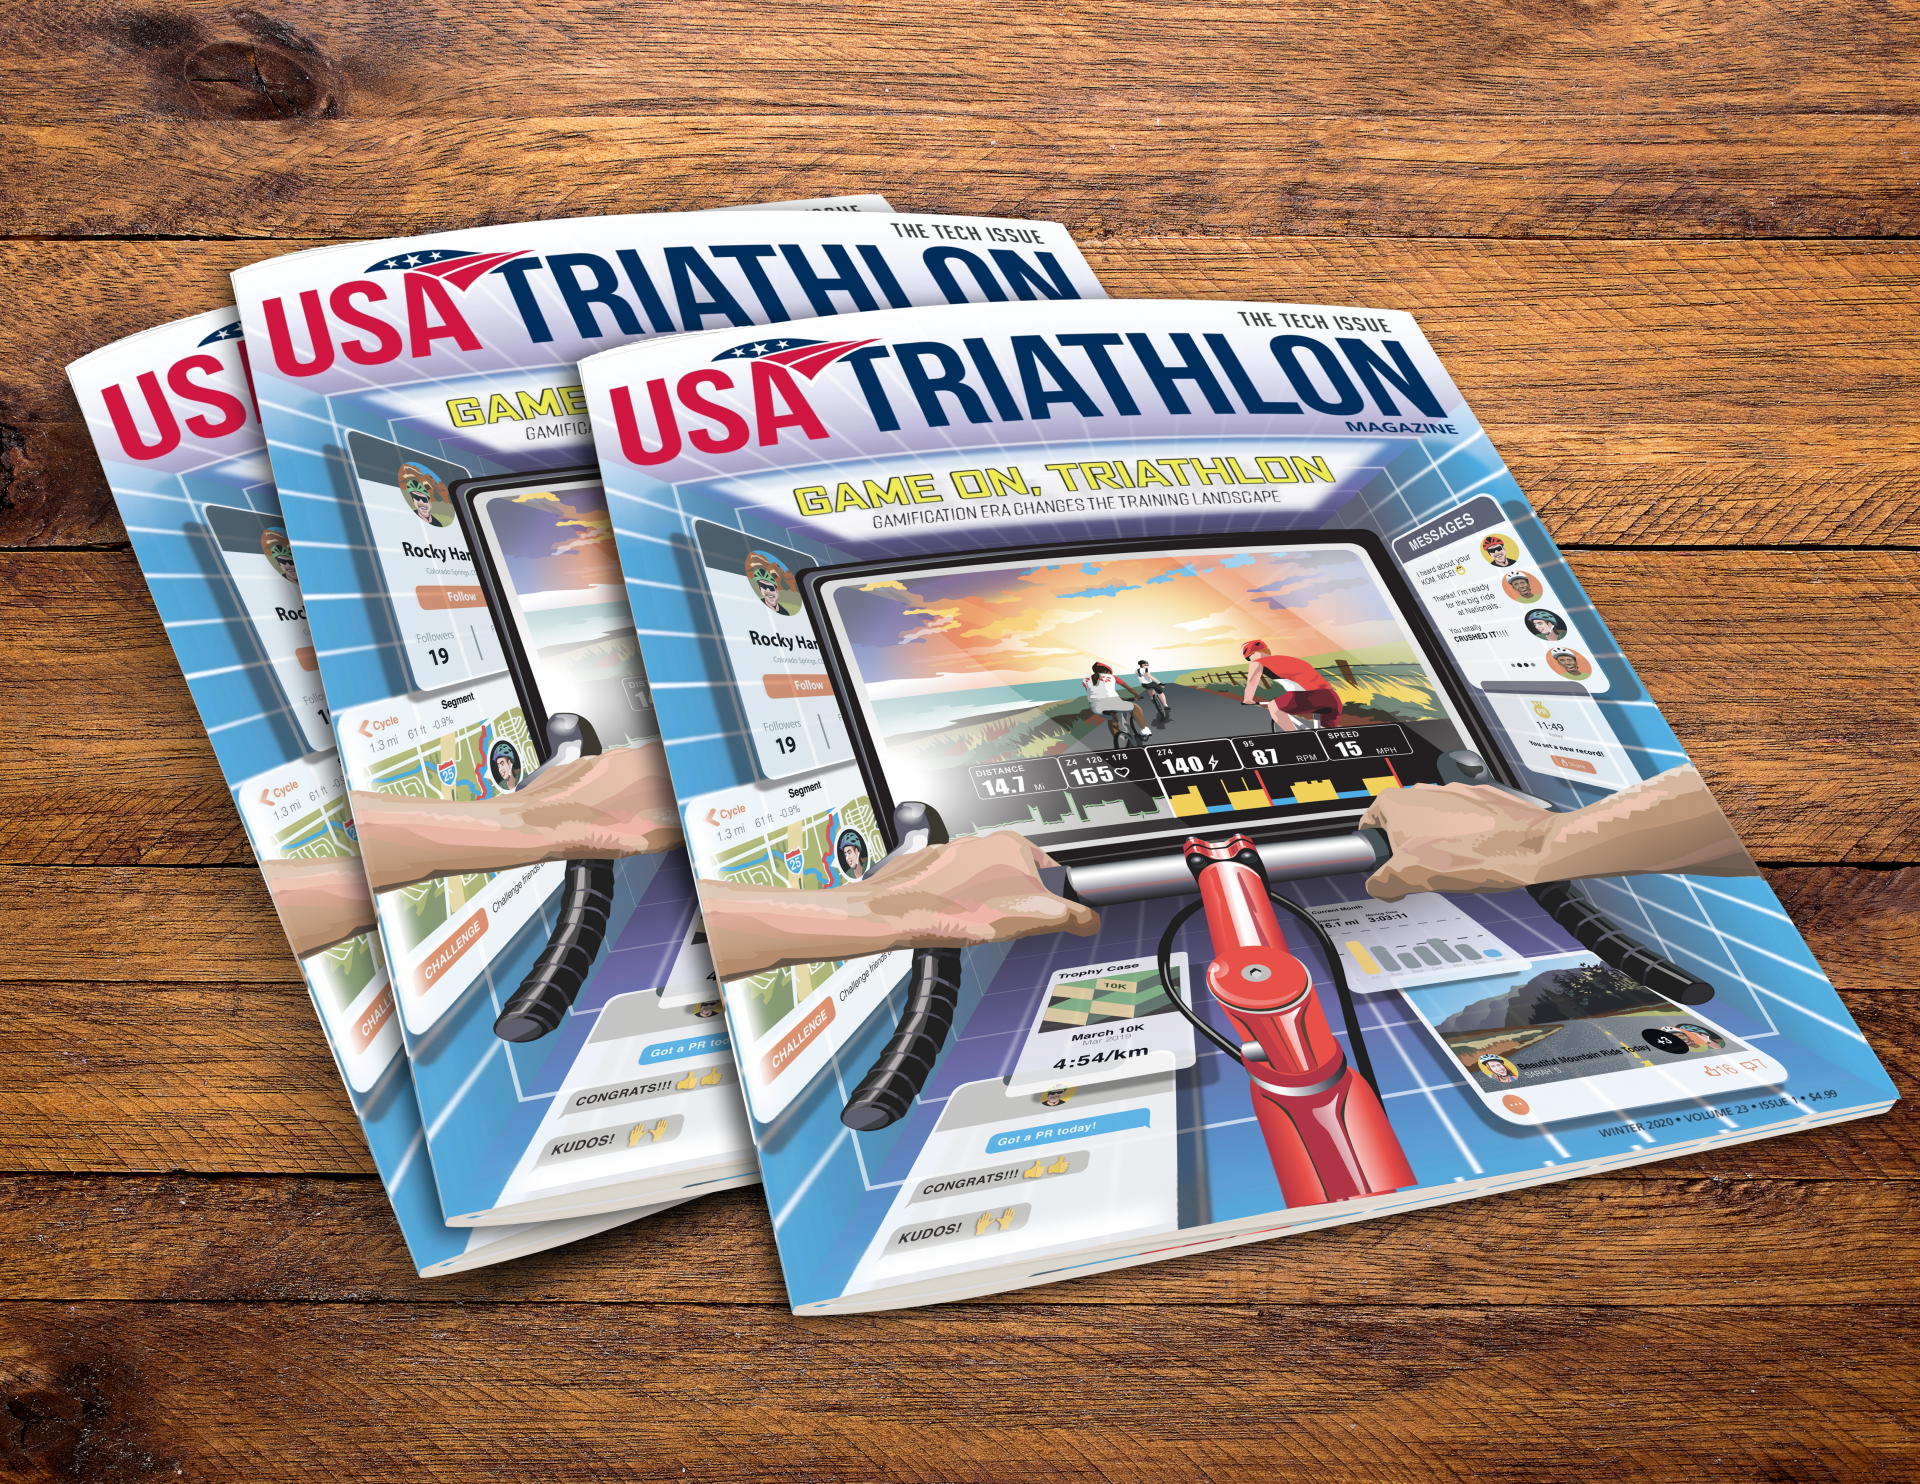 Magazine covers, USA Triathlon